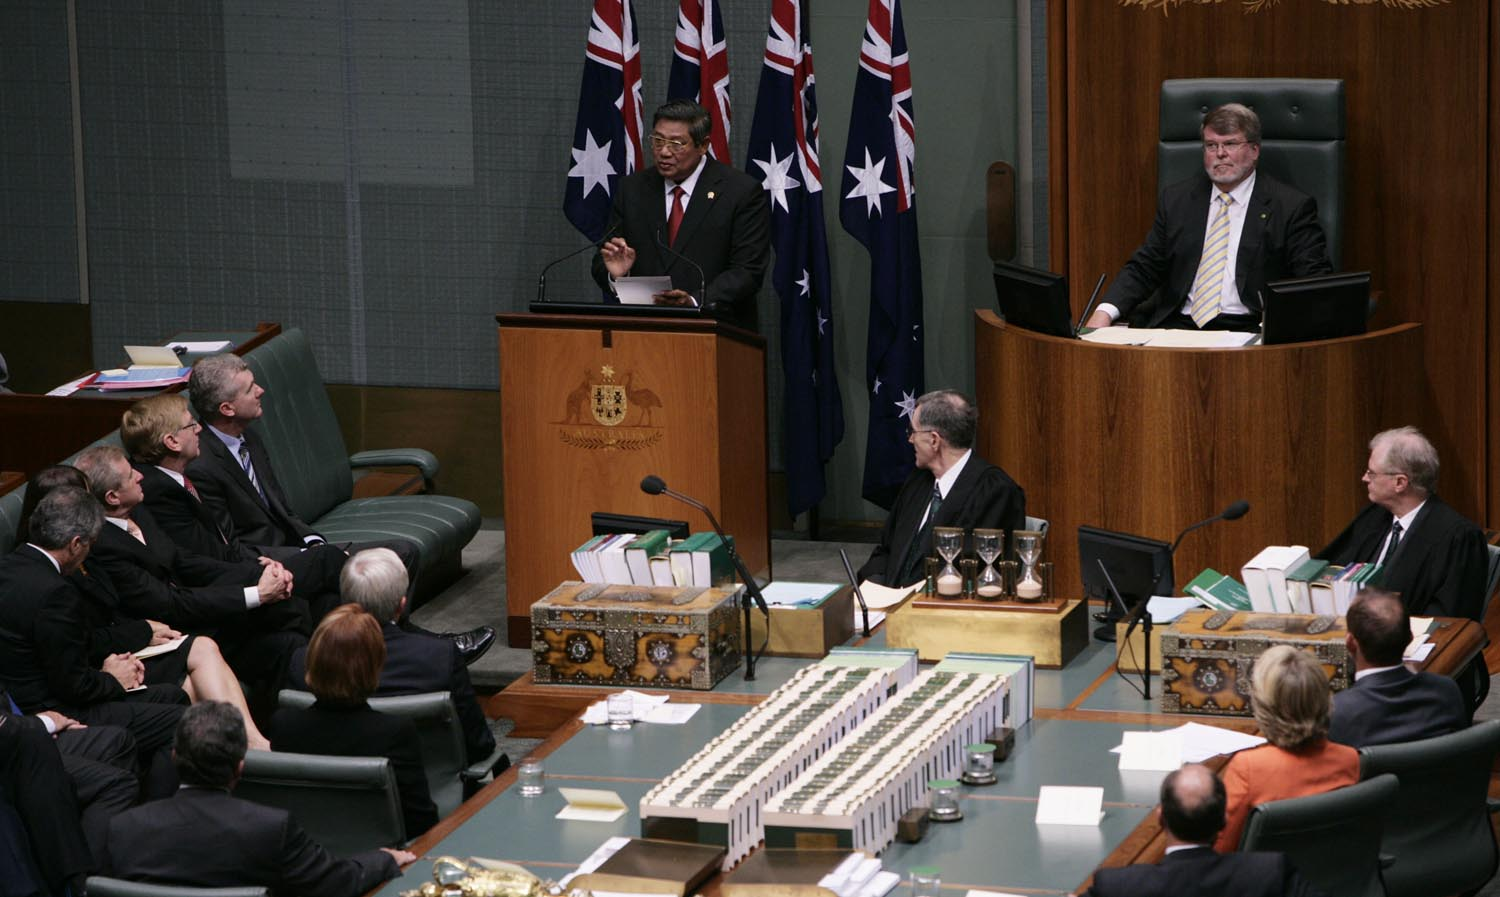 President Susilo Bambang Yudhoyono delivers a speech in a joint session before the Australian parliament, in the Great Hall, Parliament House, Canberra, Wednesday (10/3) afternoon.